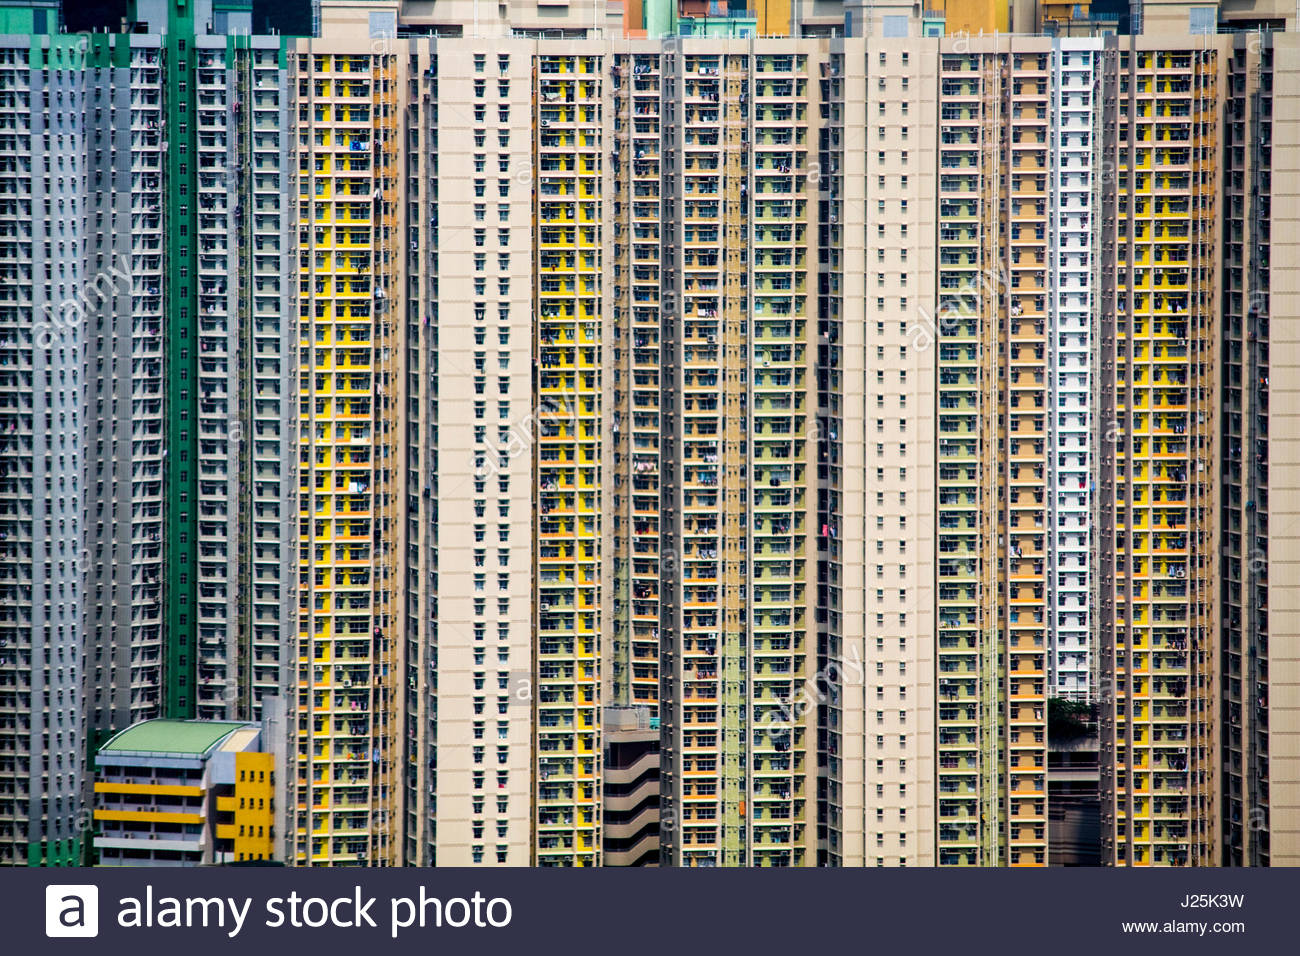 Hong Kong Highrise   These Apartments In Hong Kong Felt Like Beehives To Me